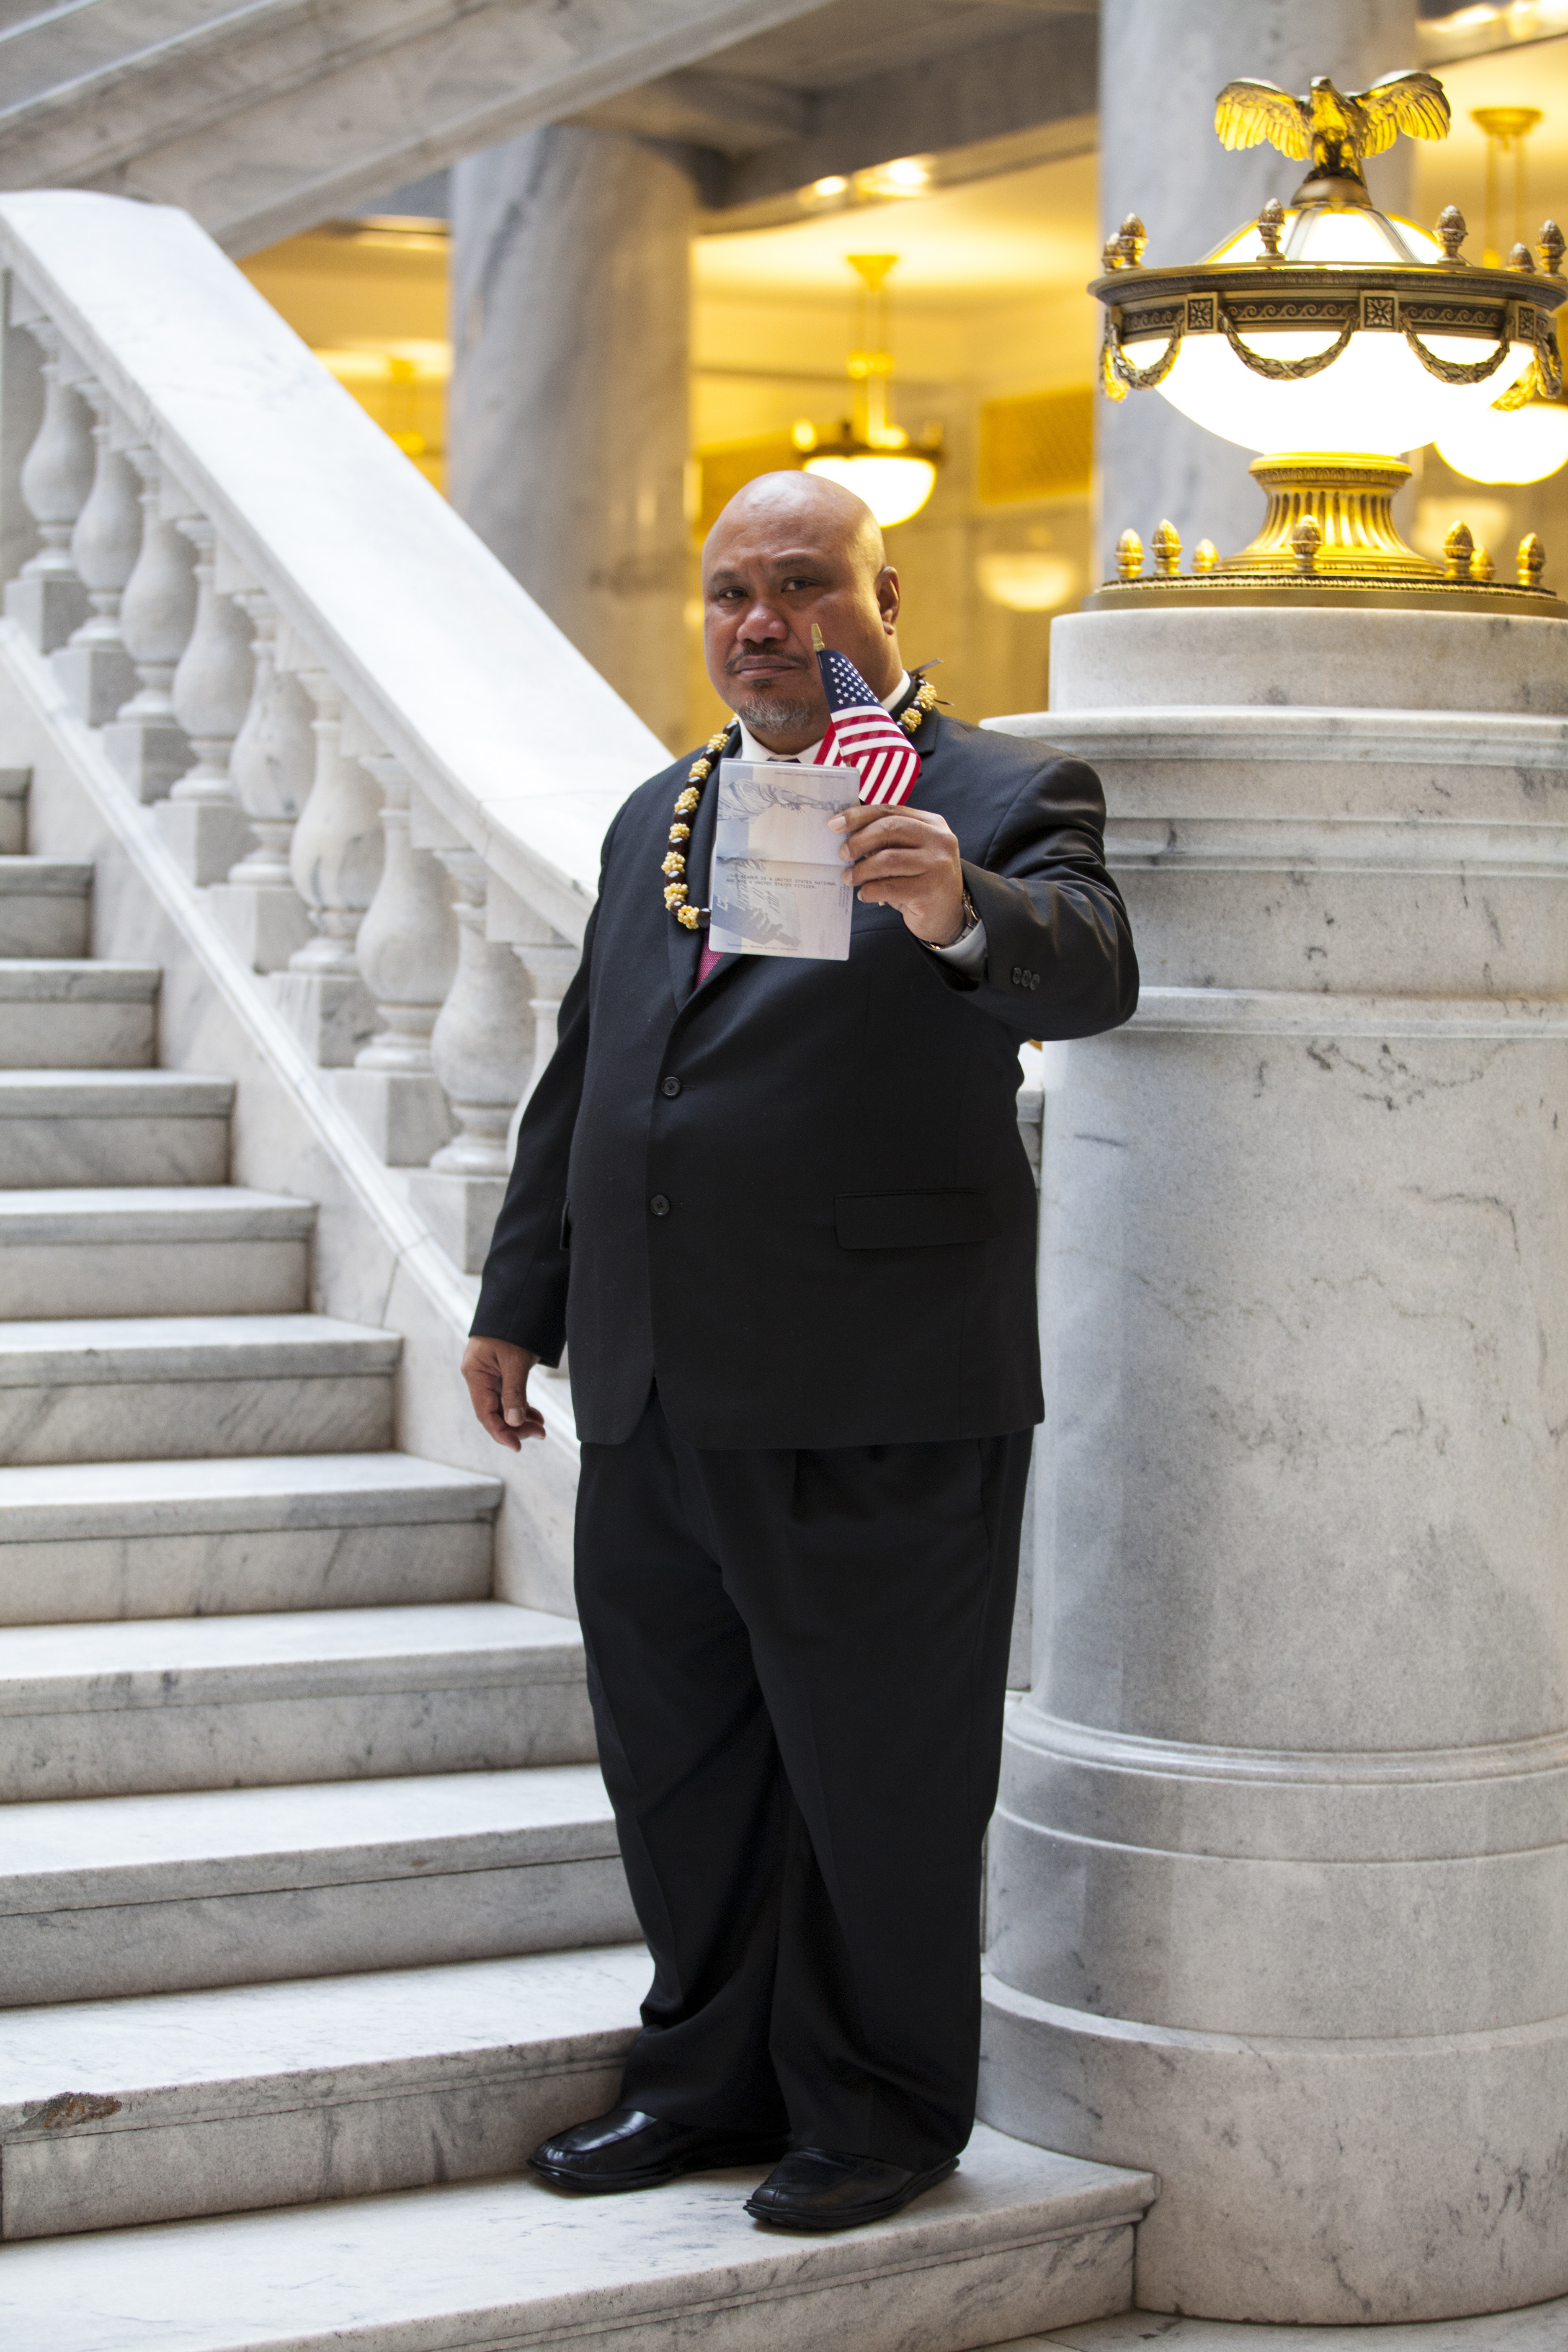 In this undated image provided by nonprofit advocacy and legal group Equally American, John Fitisemanu, an American Samoan and the lead plaintiff in a lawsuit against the United States seeking full U.S. citizenship, poses for a photo in Salt Lake City, Ut